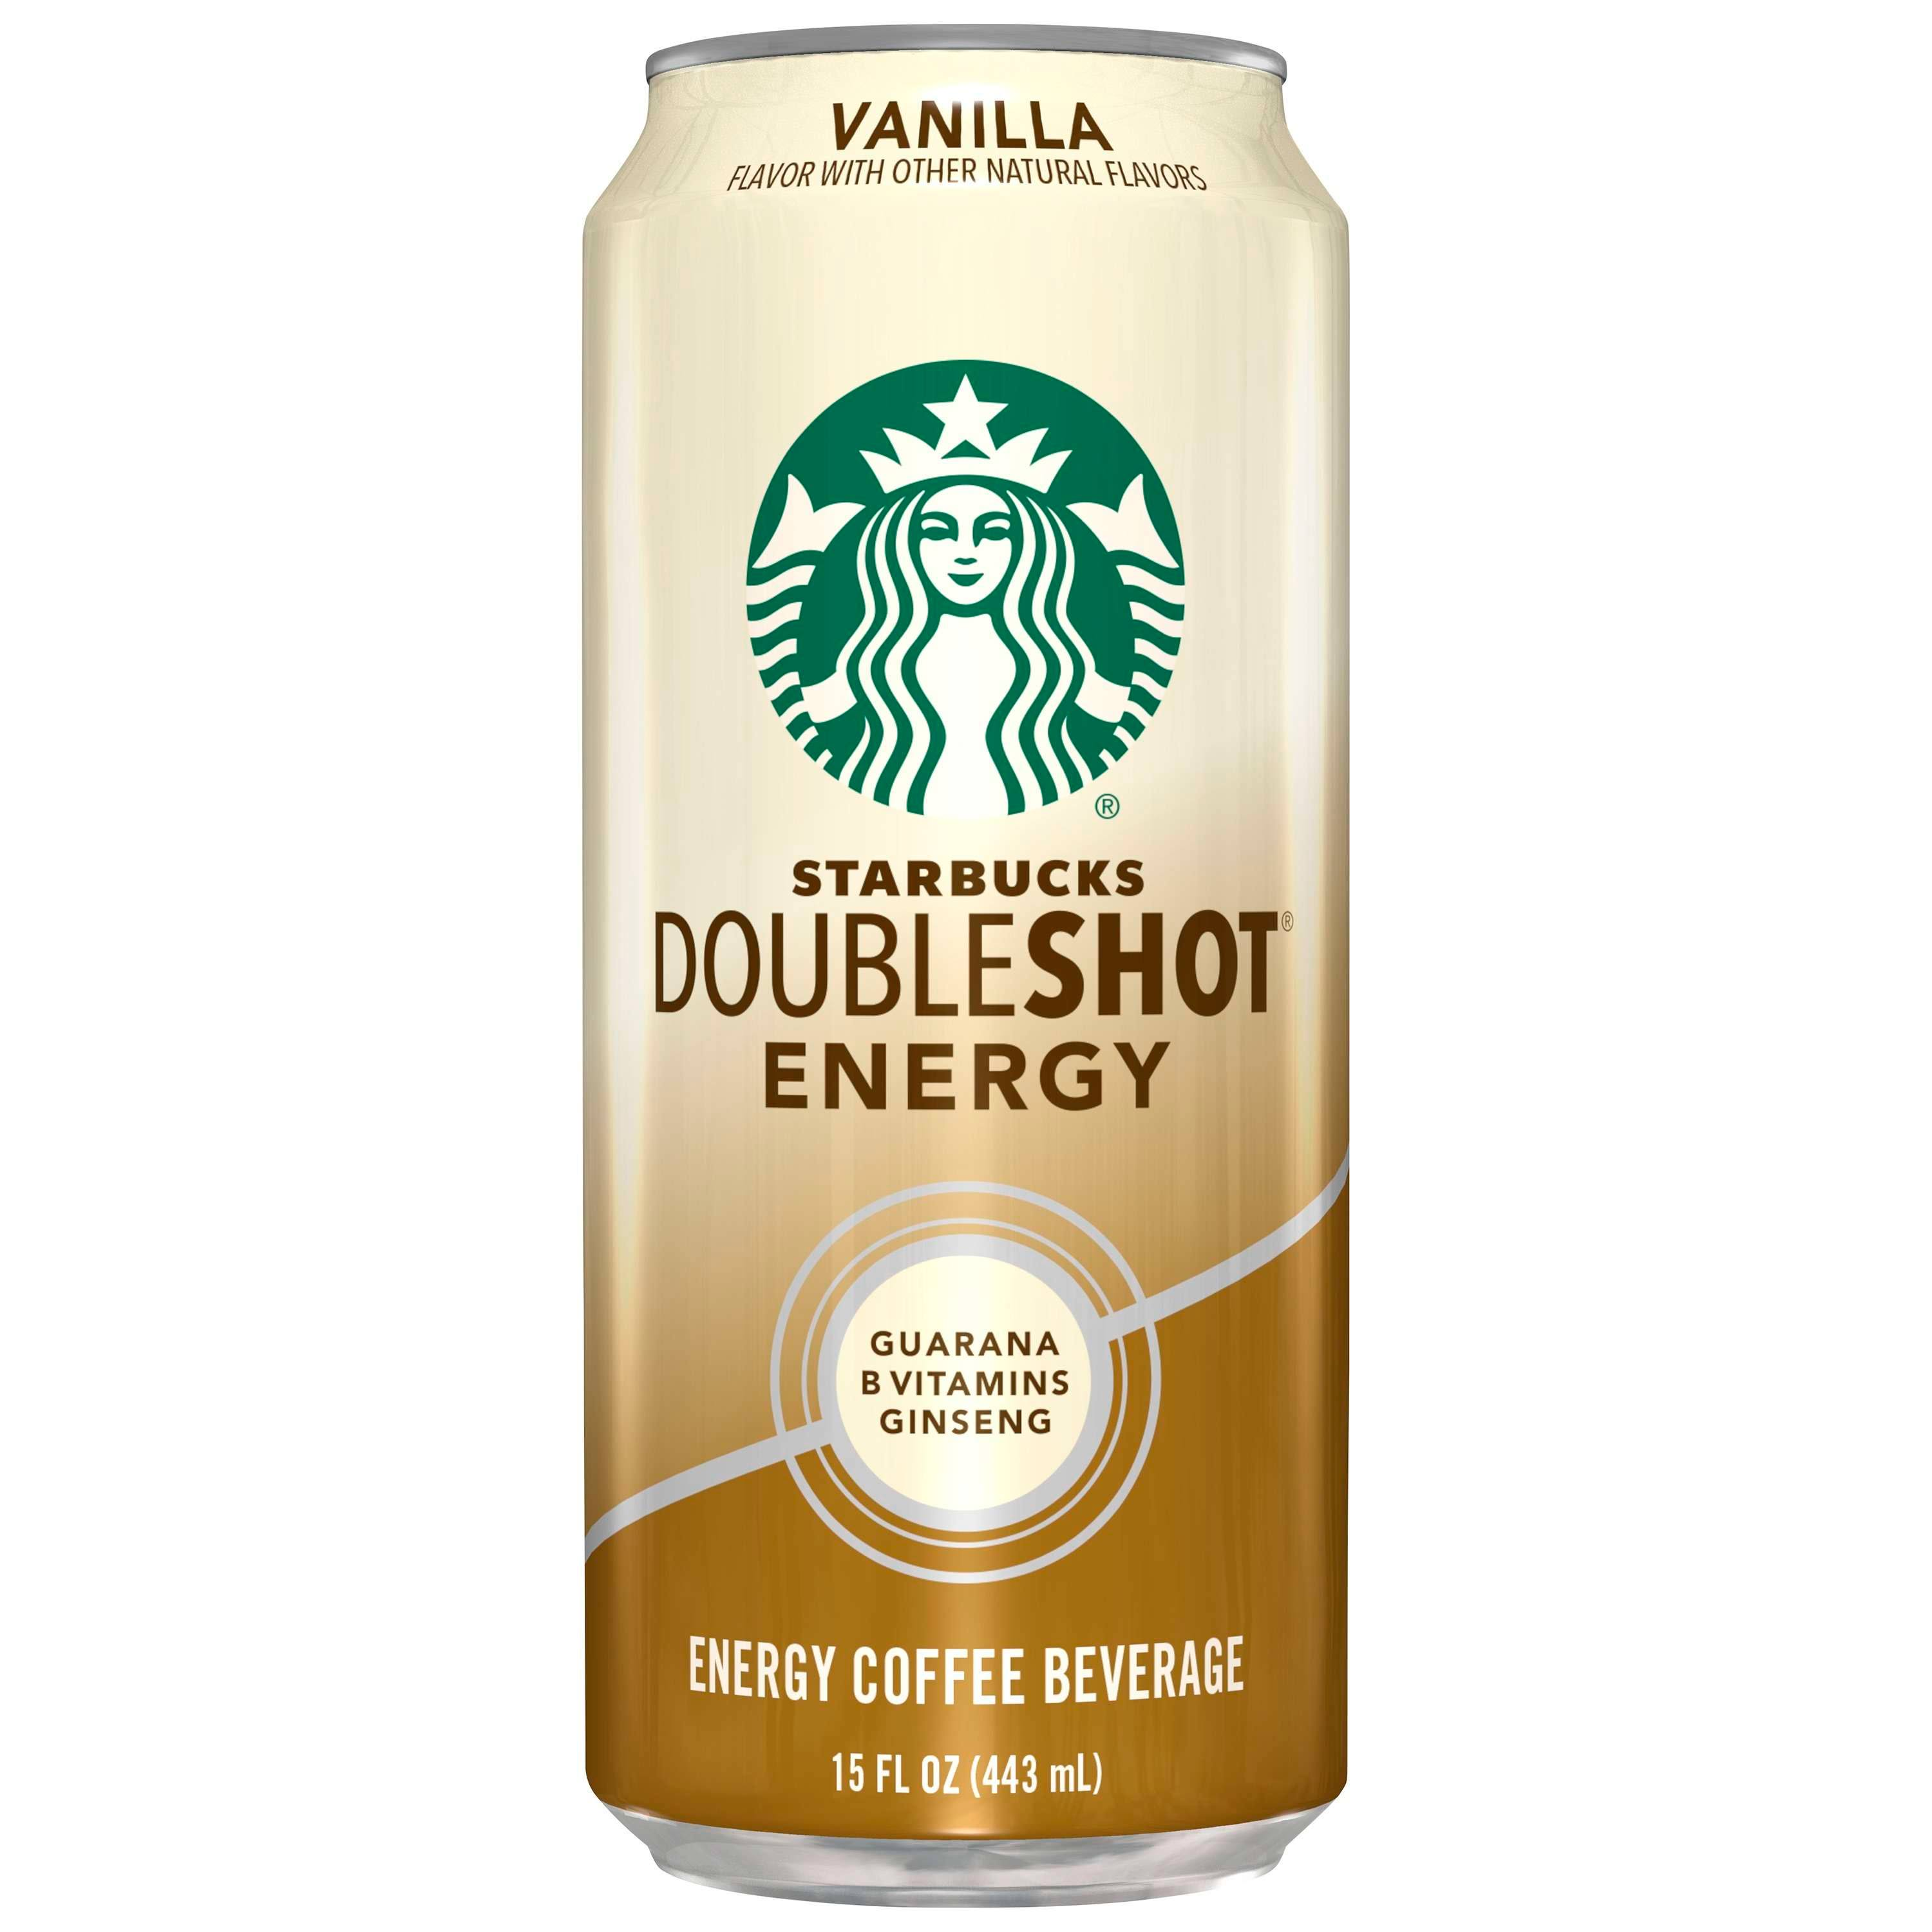 Starbucks Doubleshot Energy Coffee - Vanilla